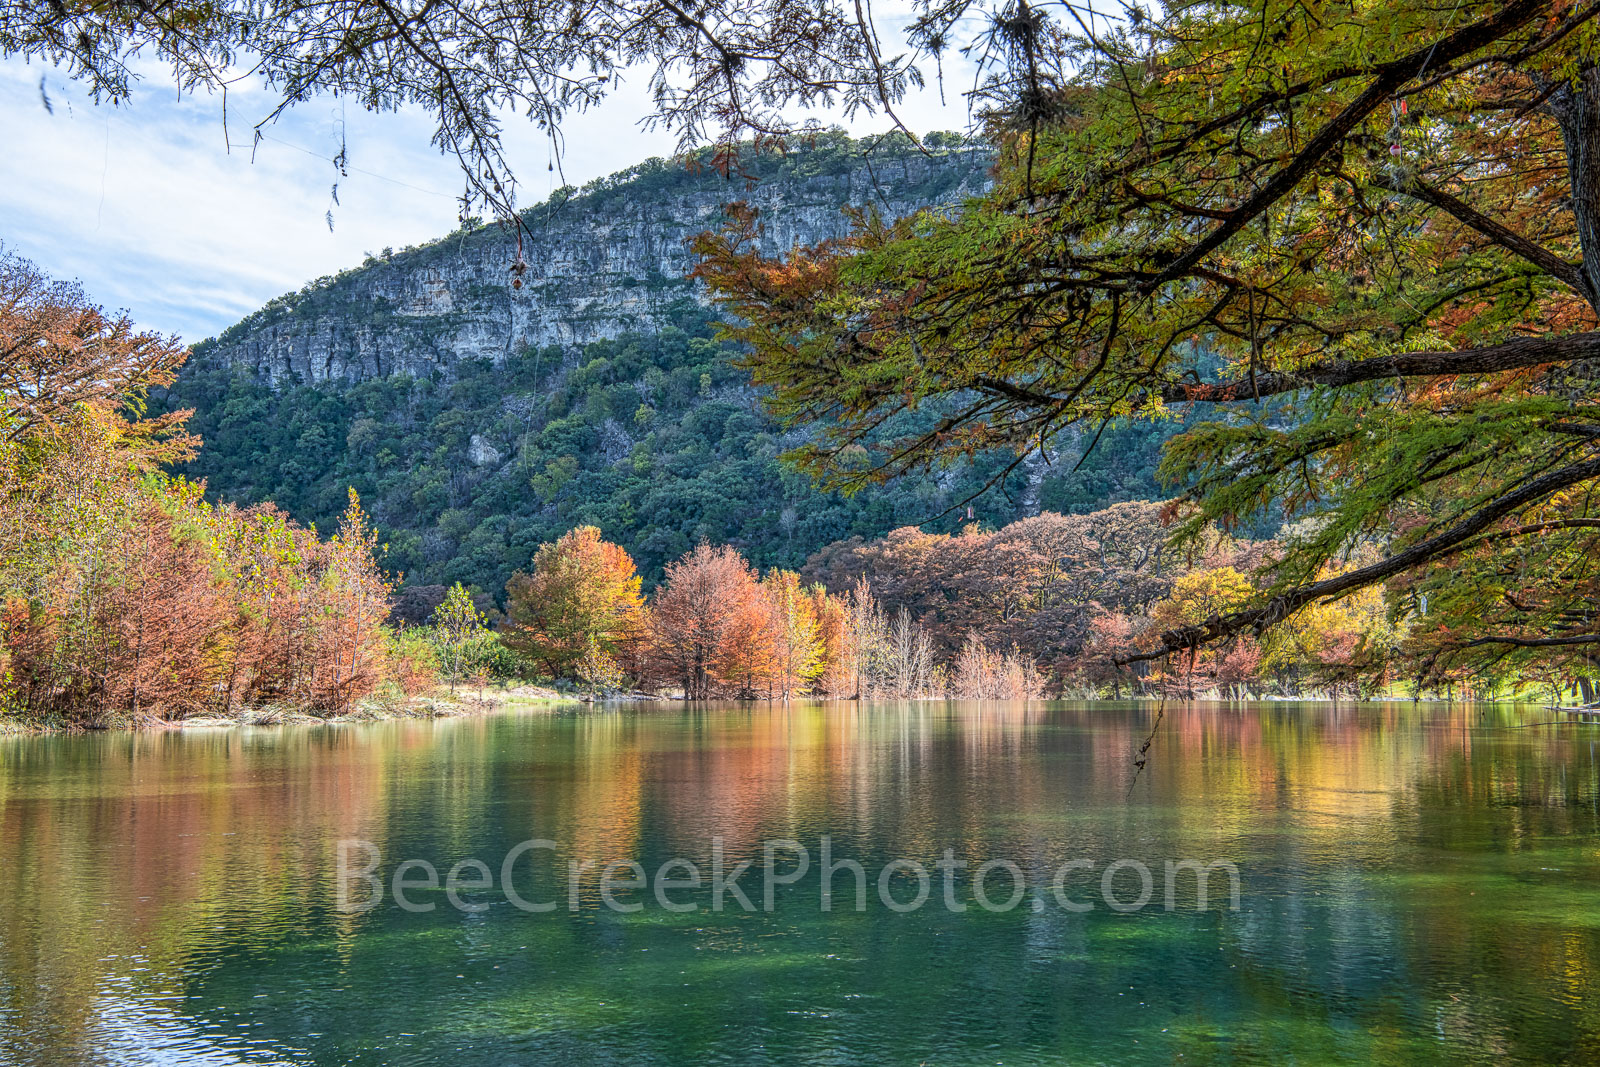 Garner State Park, Frio river, autumn, foliage, Texas landscape, texas hill country, fall, fall colors, Old Baldy, canvas, prints, Texas, landscape, autumn, , photo